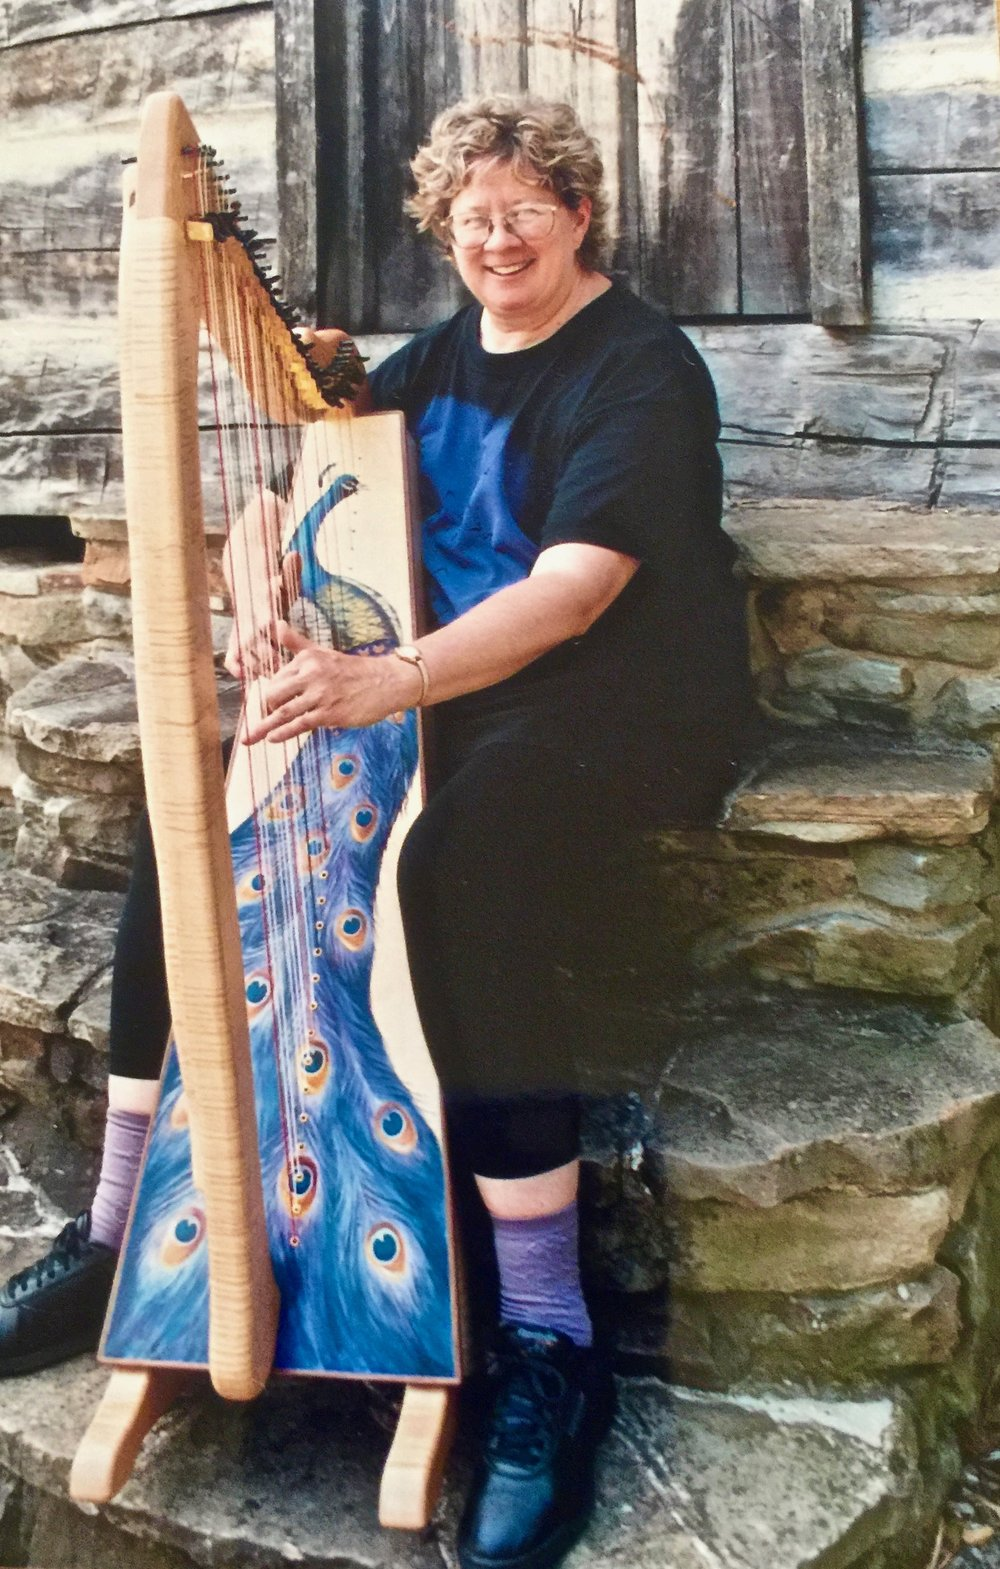 Carol Thompson with her one-of-a-kind peacock Glen Aulin Harp.